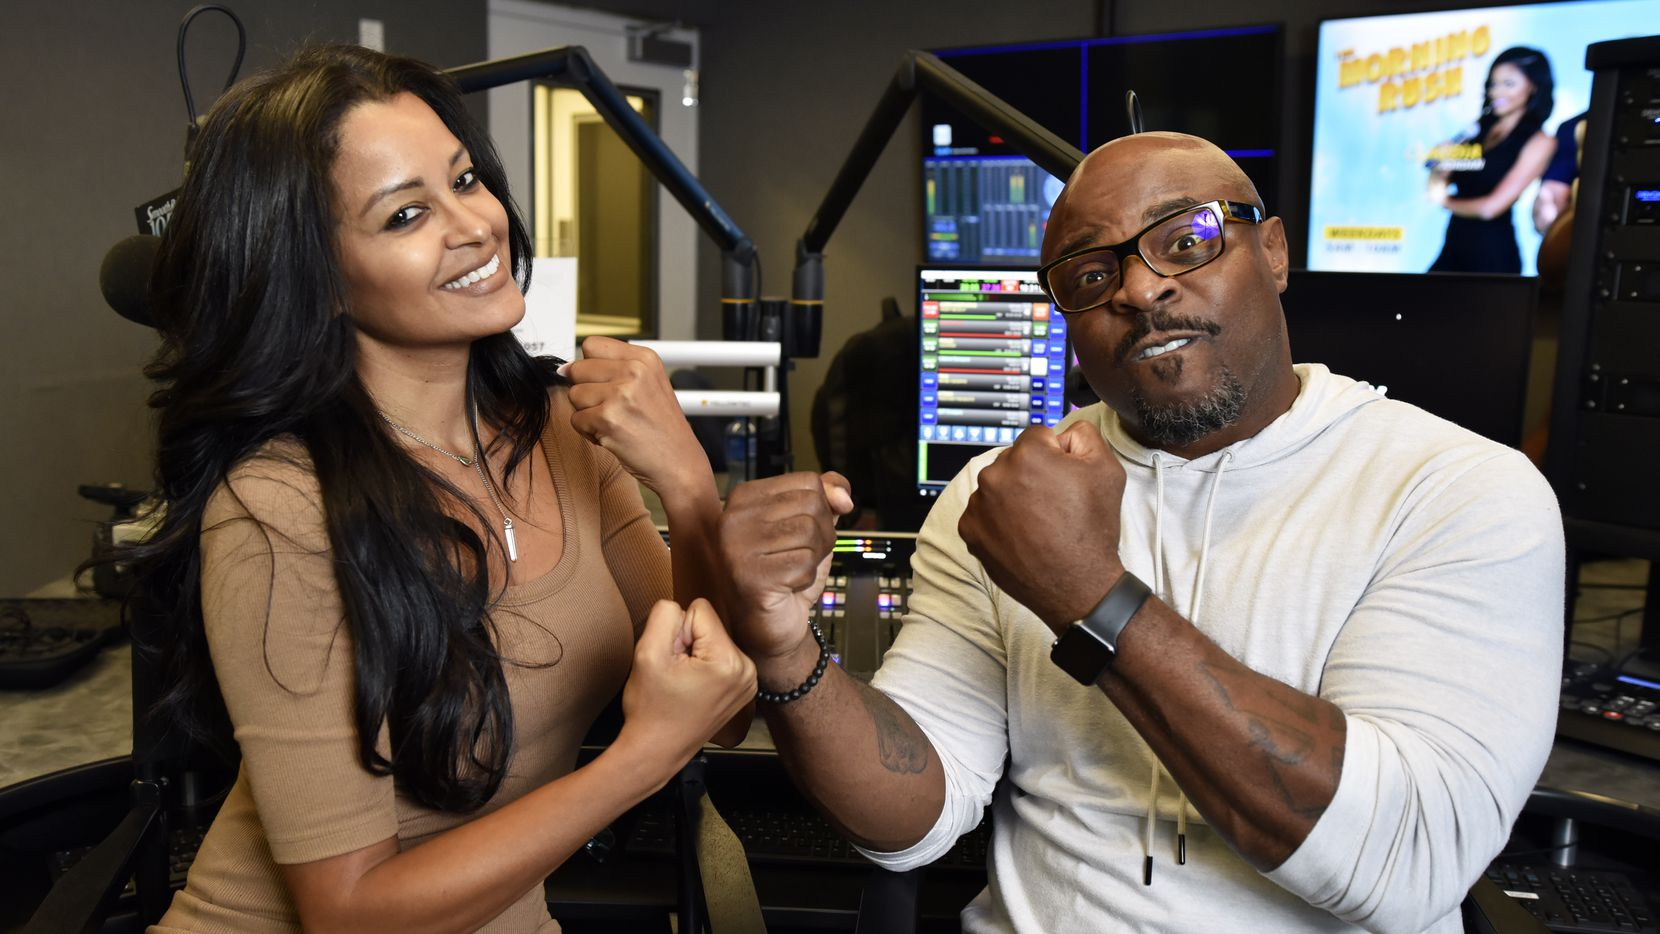 Claudia Jordan (left), shown with her former cohost Rudy Rush on KRNB Smooth 105.7 radio, will have an hour-long show on Fox Soul called Out Loud with Claudia Jordan. Ben Torres/Special Contributor